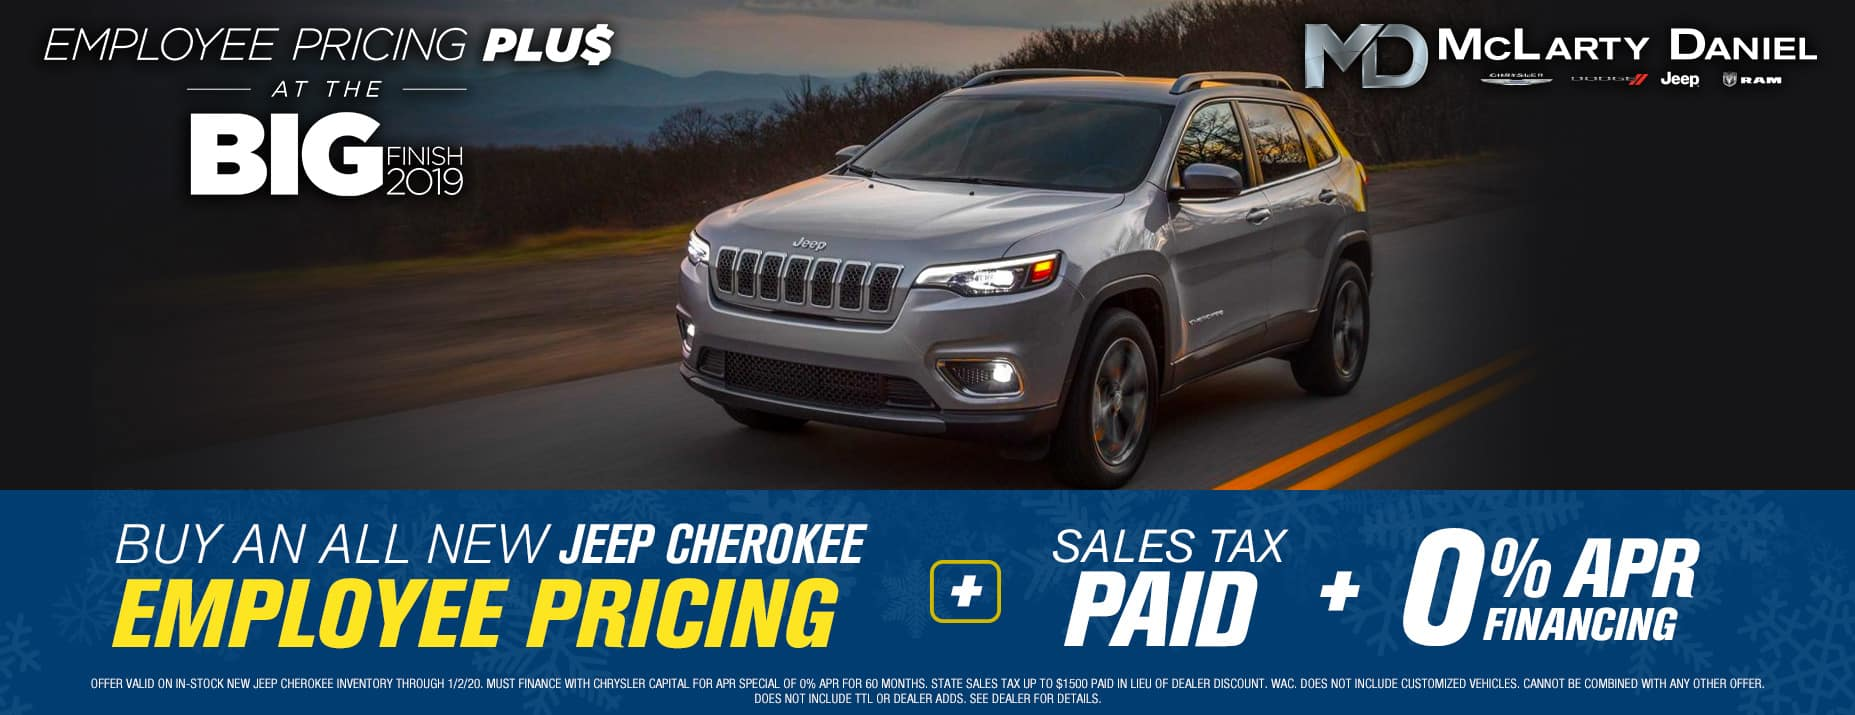 EMPLOYEE PRICING FOR EVERYONE ON JEEP CHEROKEE -PLUS- 0% APR -PLUS- SALES TAX PAID!